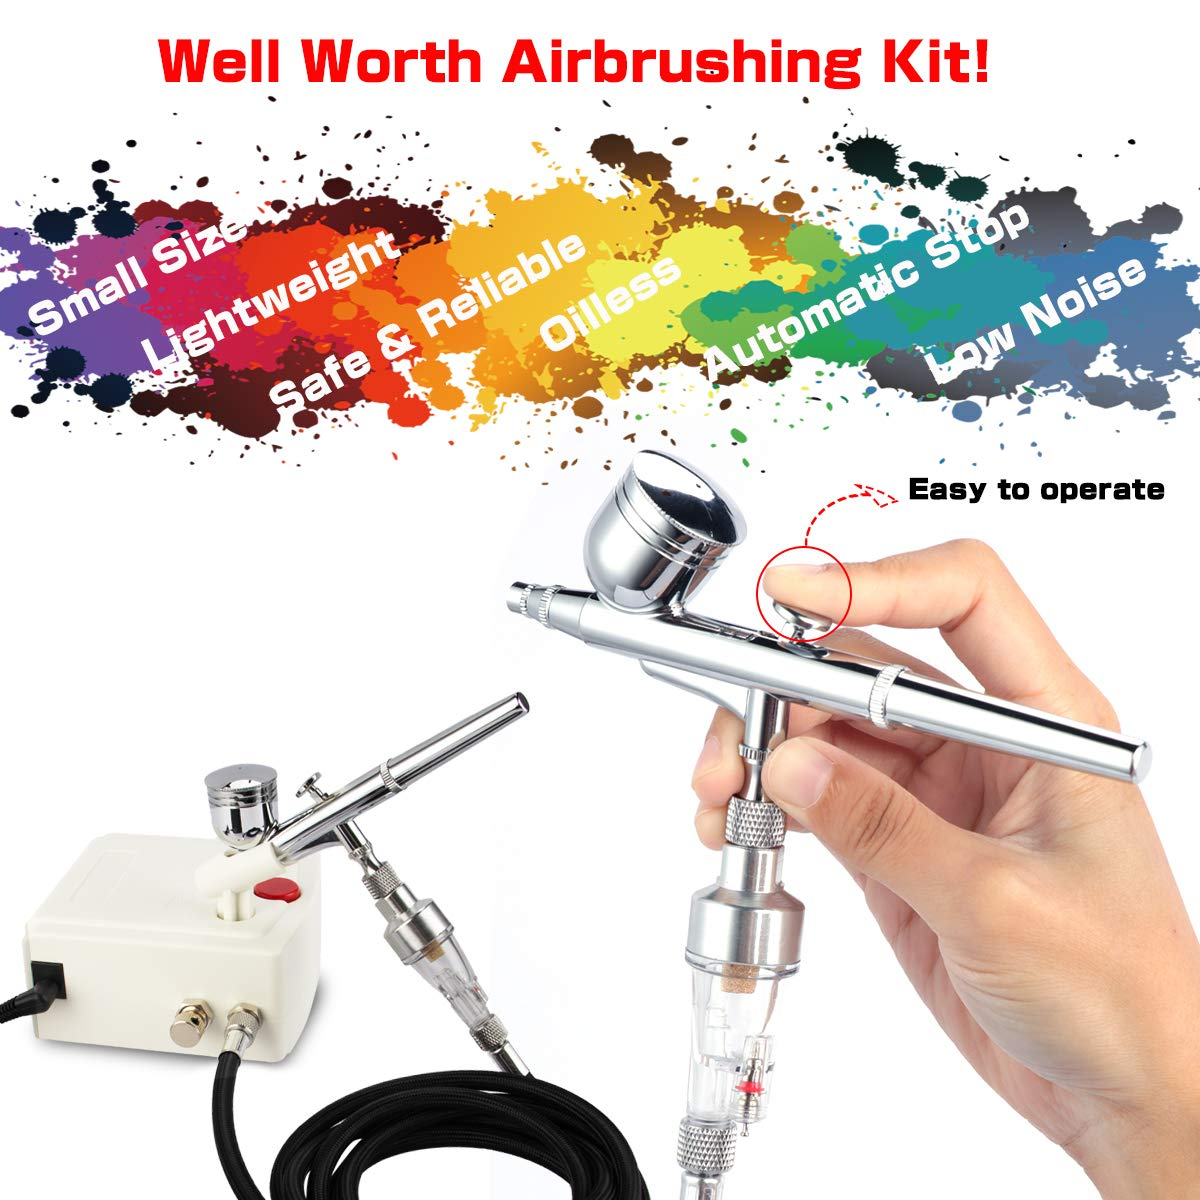 Airbrush Kit,Fy-Light 3 Modes Dual-Action Airbrush Set with Mini Compressor 0.2mm Needle 2CC Cup Cleaning Kit for Makeup,Nail Cake Decorating Craft Tattoo Hobby